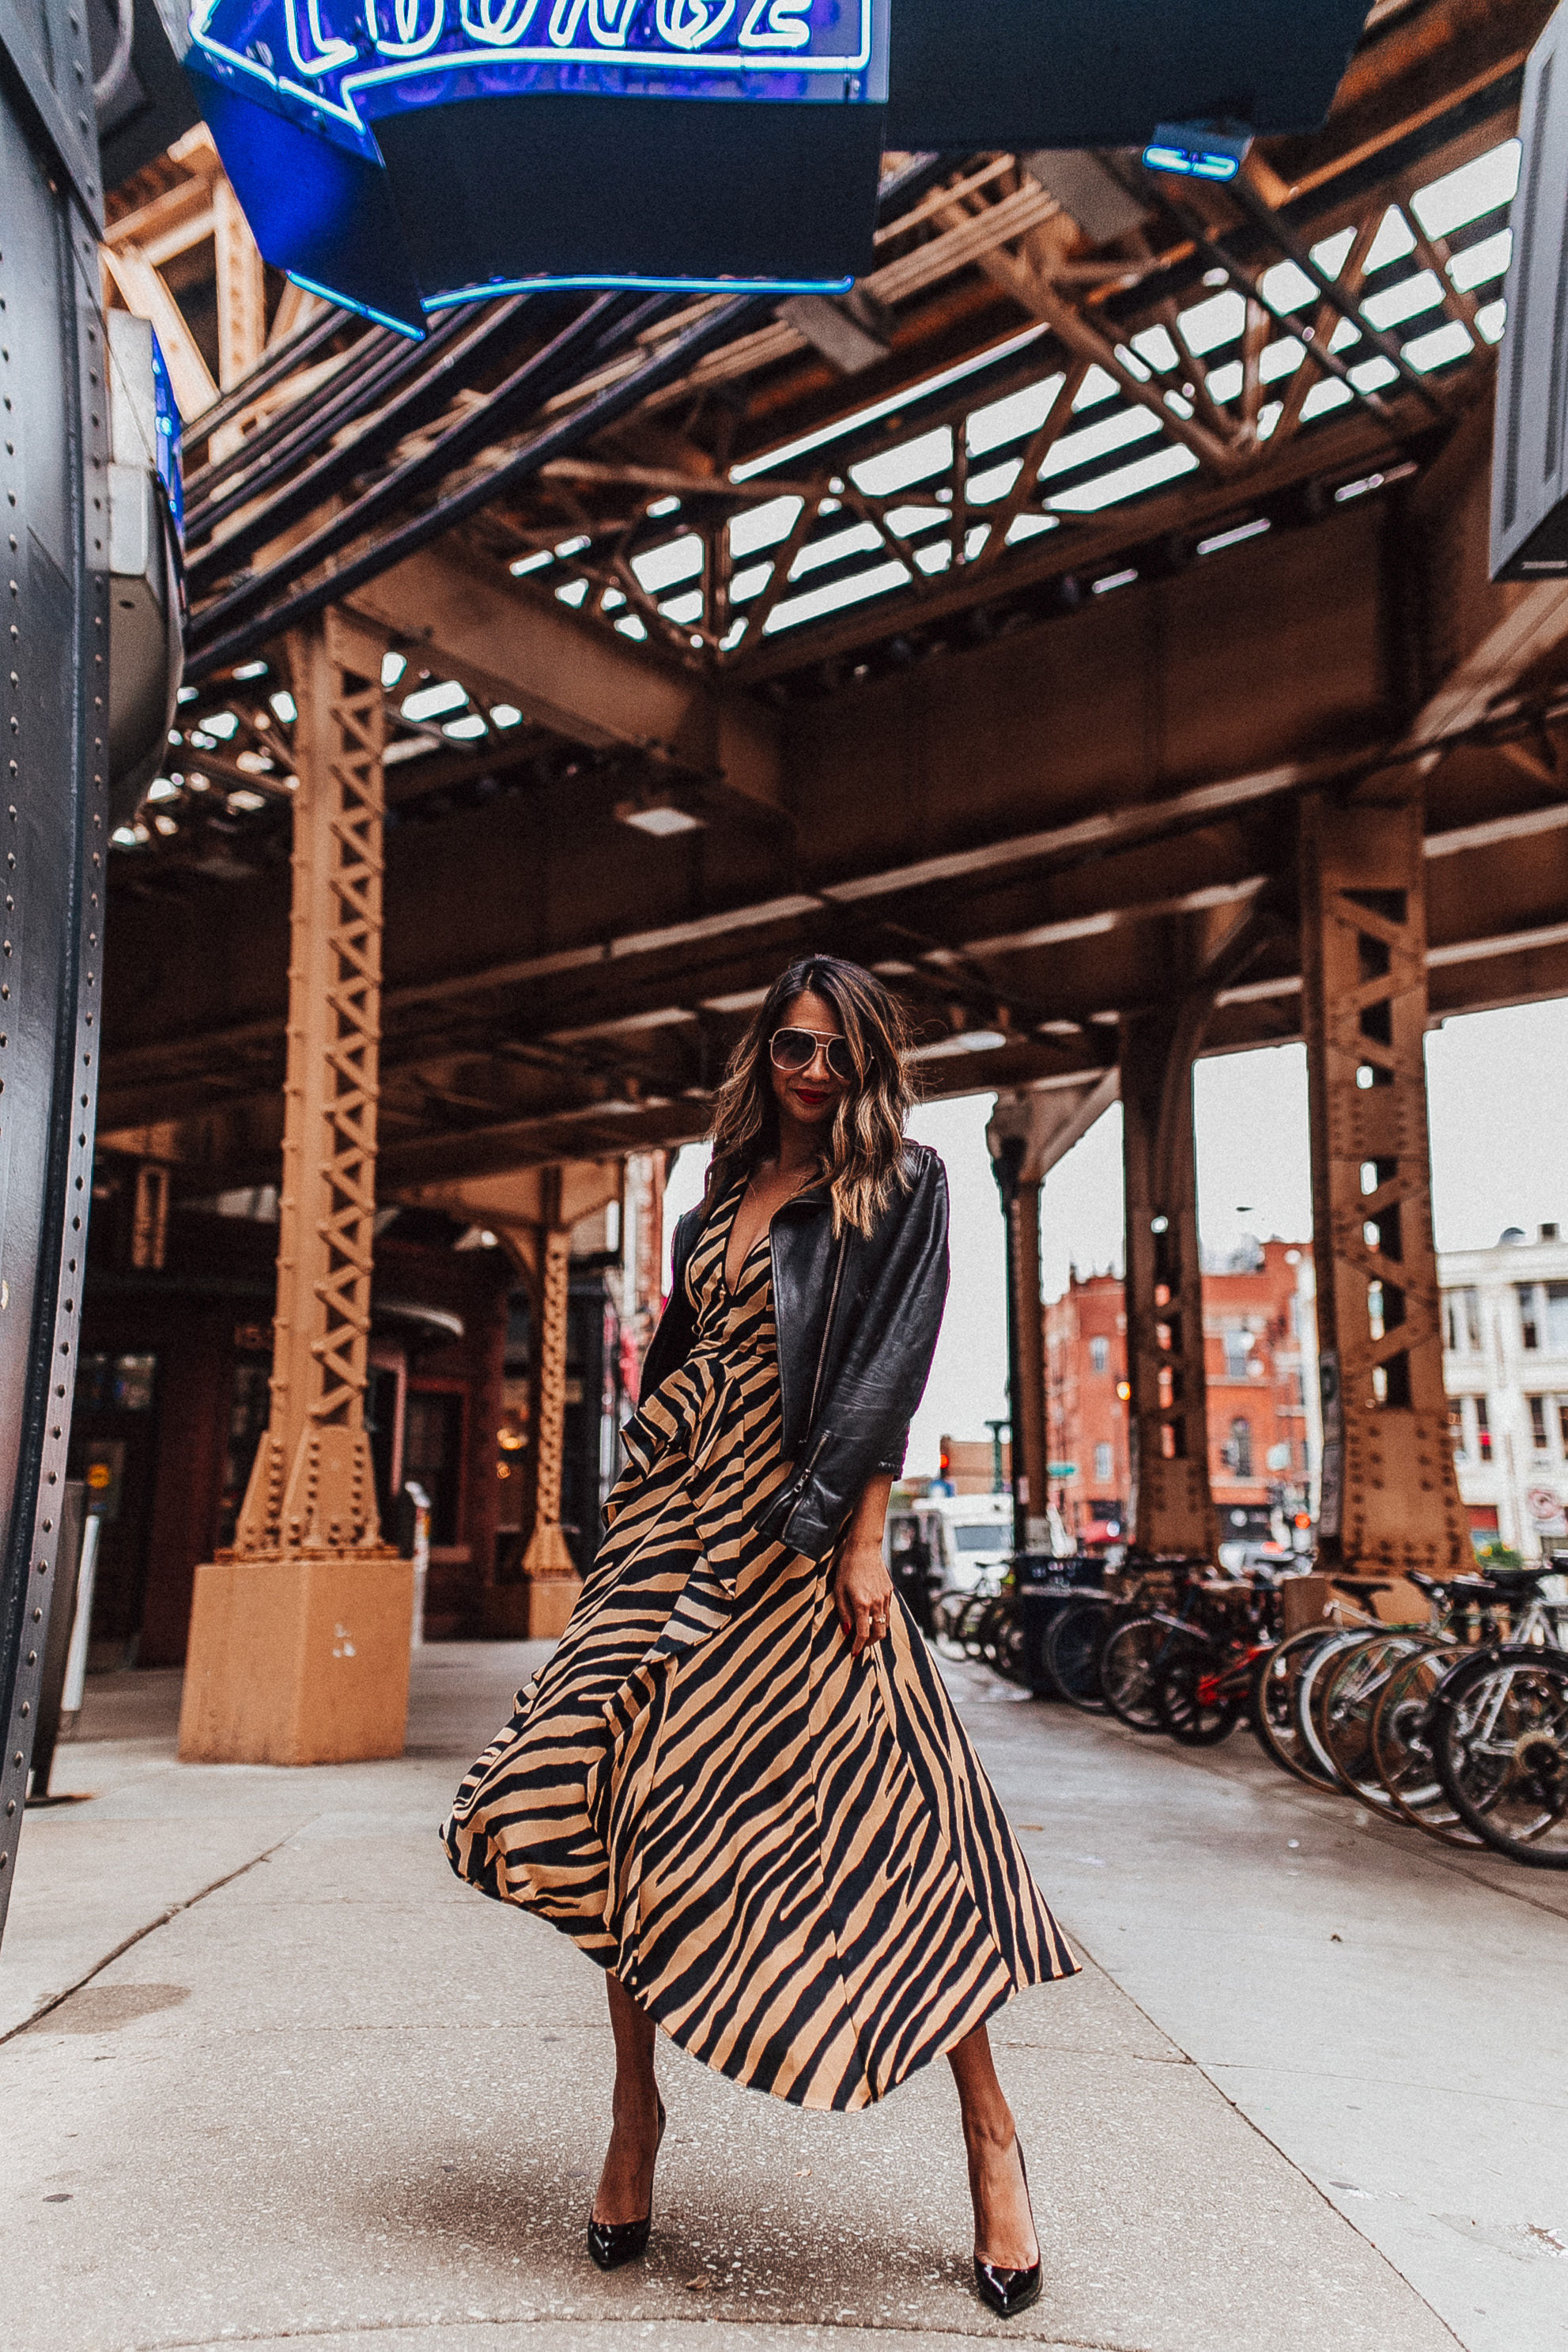 Topshop Cheetah Dress, Topshop Leopard Dress, Nordstrom Leopard Dress, How to wear leopard in fall, best dress for fall, best style in chicago, jennifer worman, Chicago lifestyle blogger